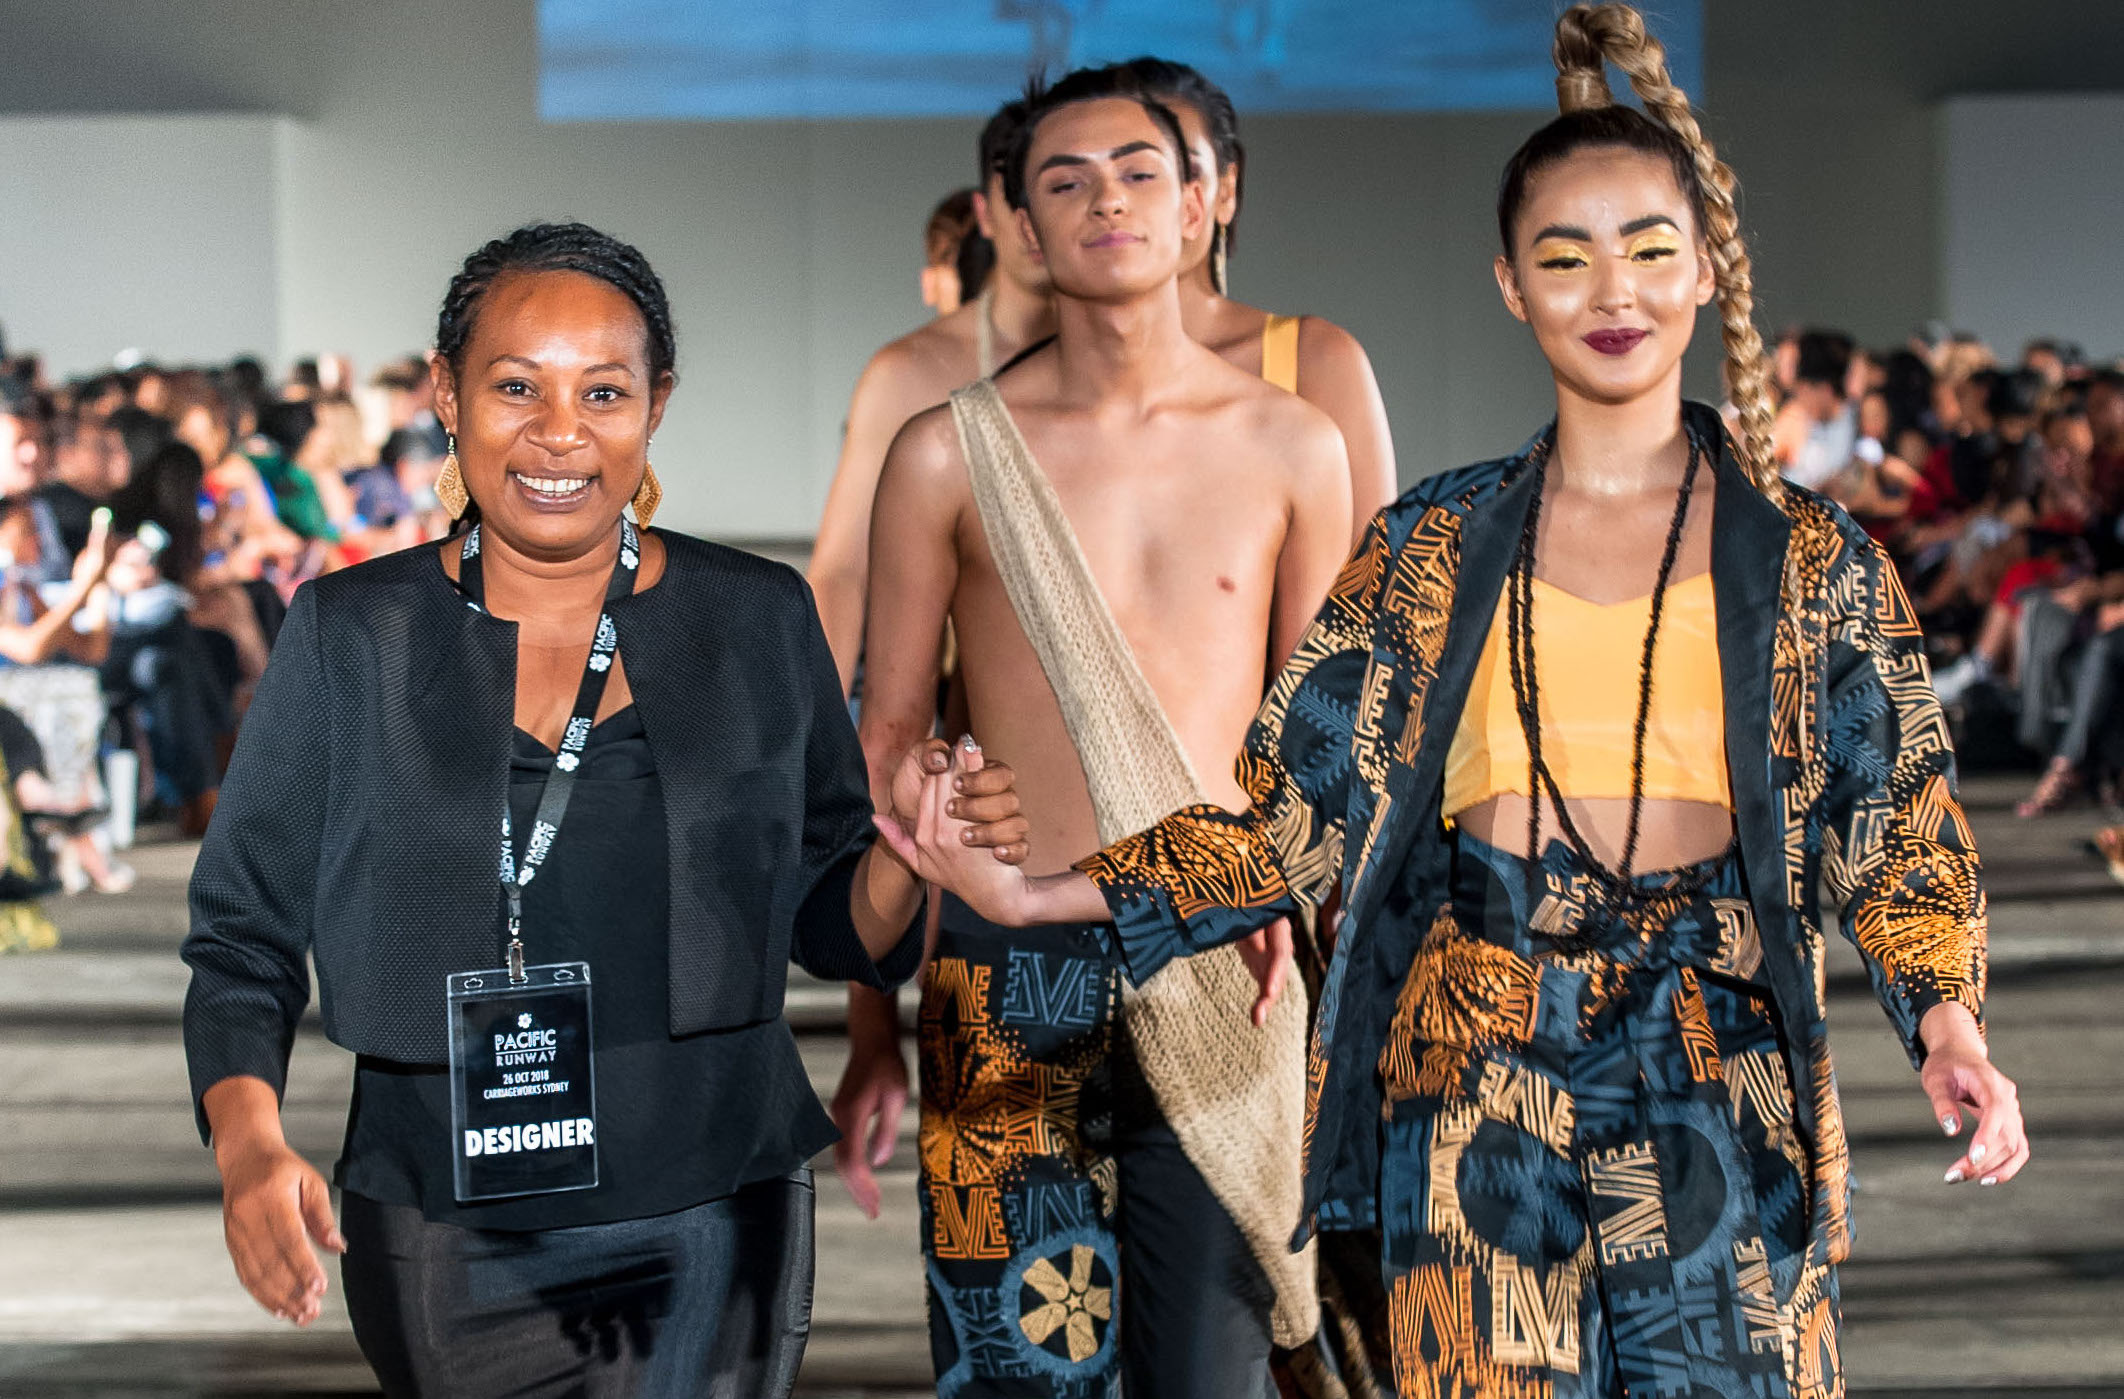 Pacific Runway is Normalising Diversity and We Are Here For It